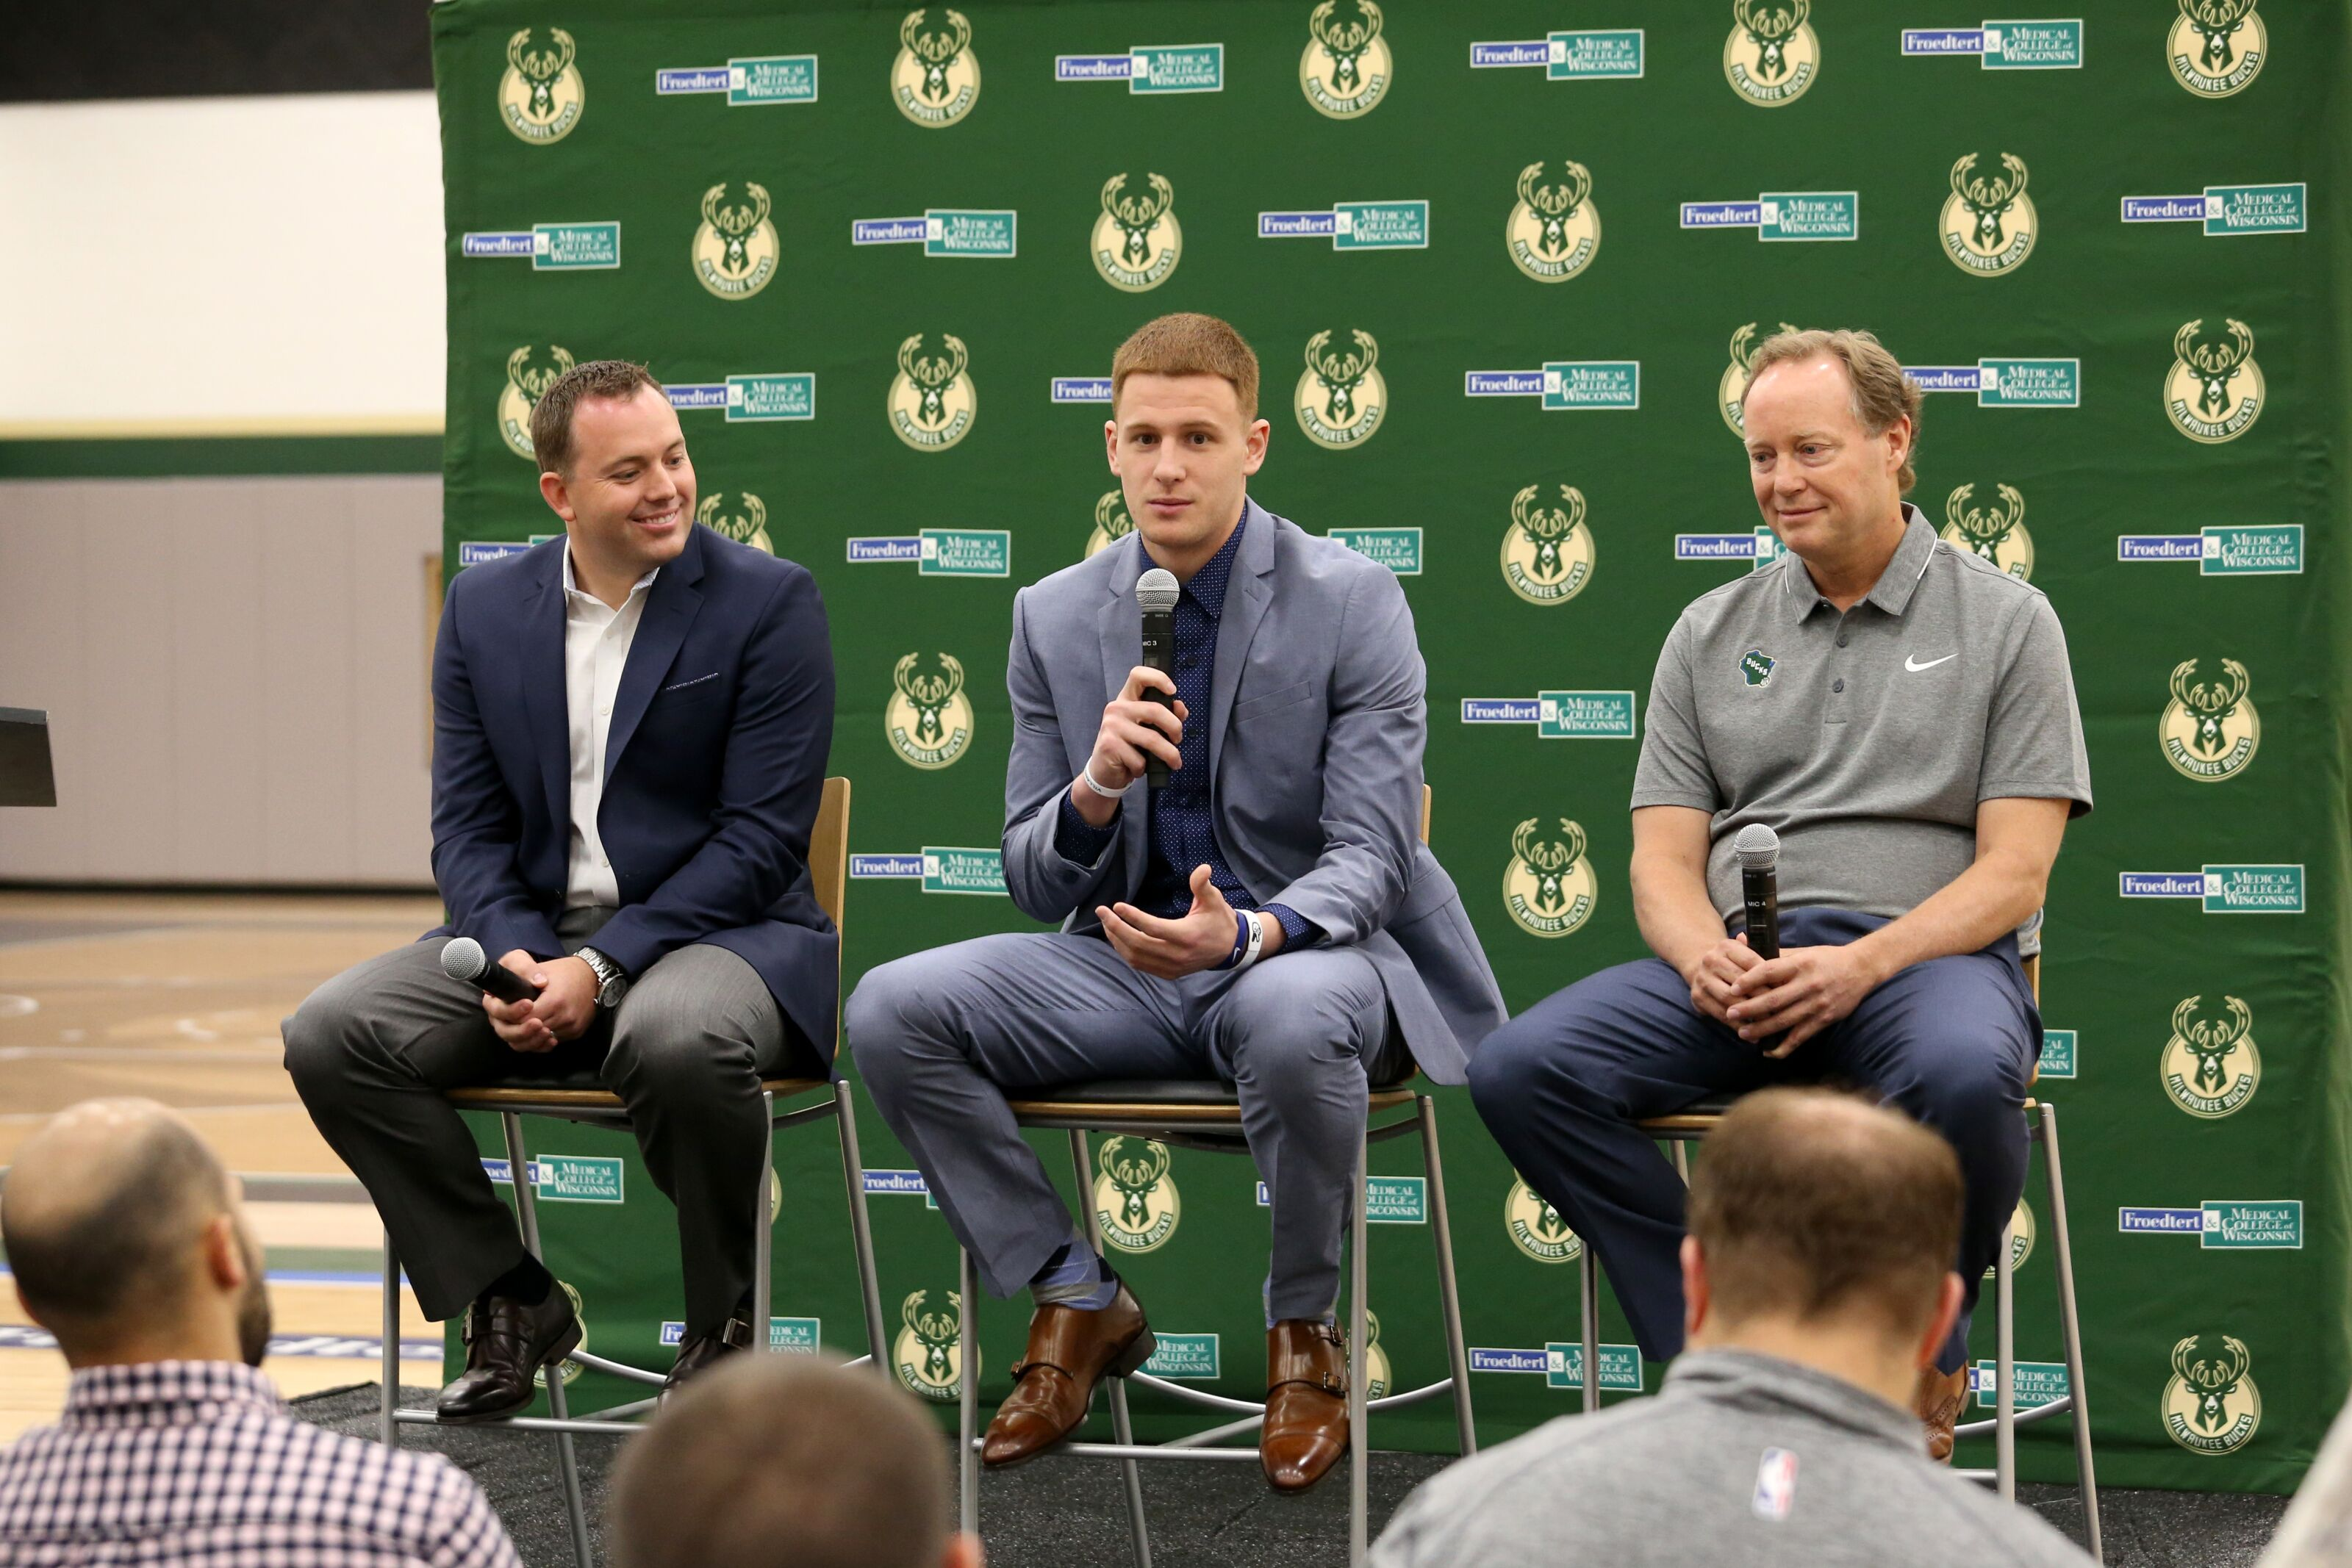 d144ff631d2 Milwaukee Bucks Daily: More reactions to Donte DiVincenzo's introduction